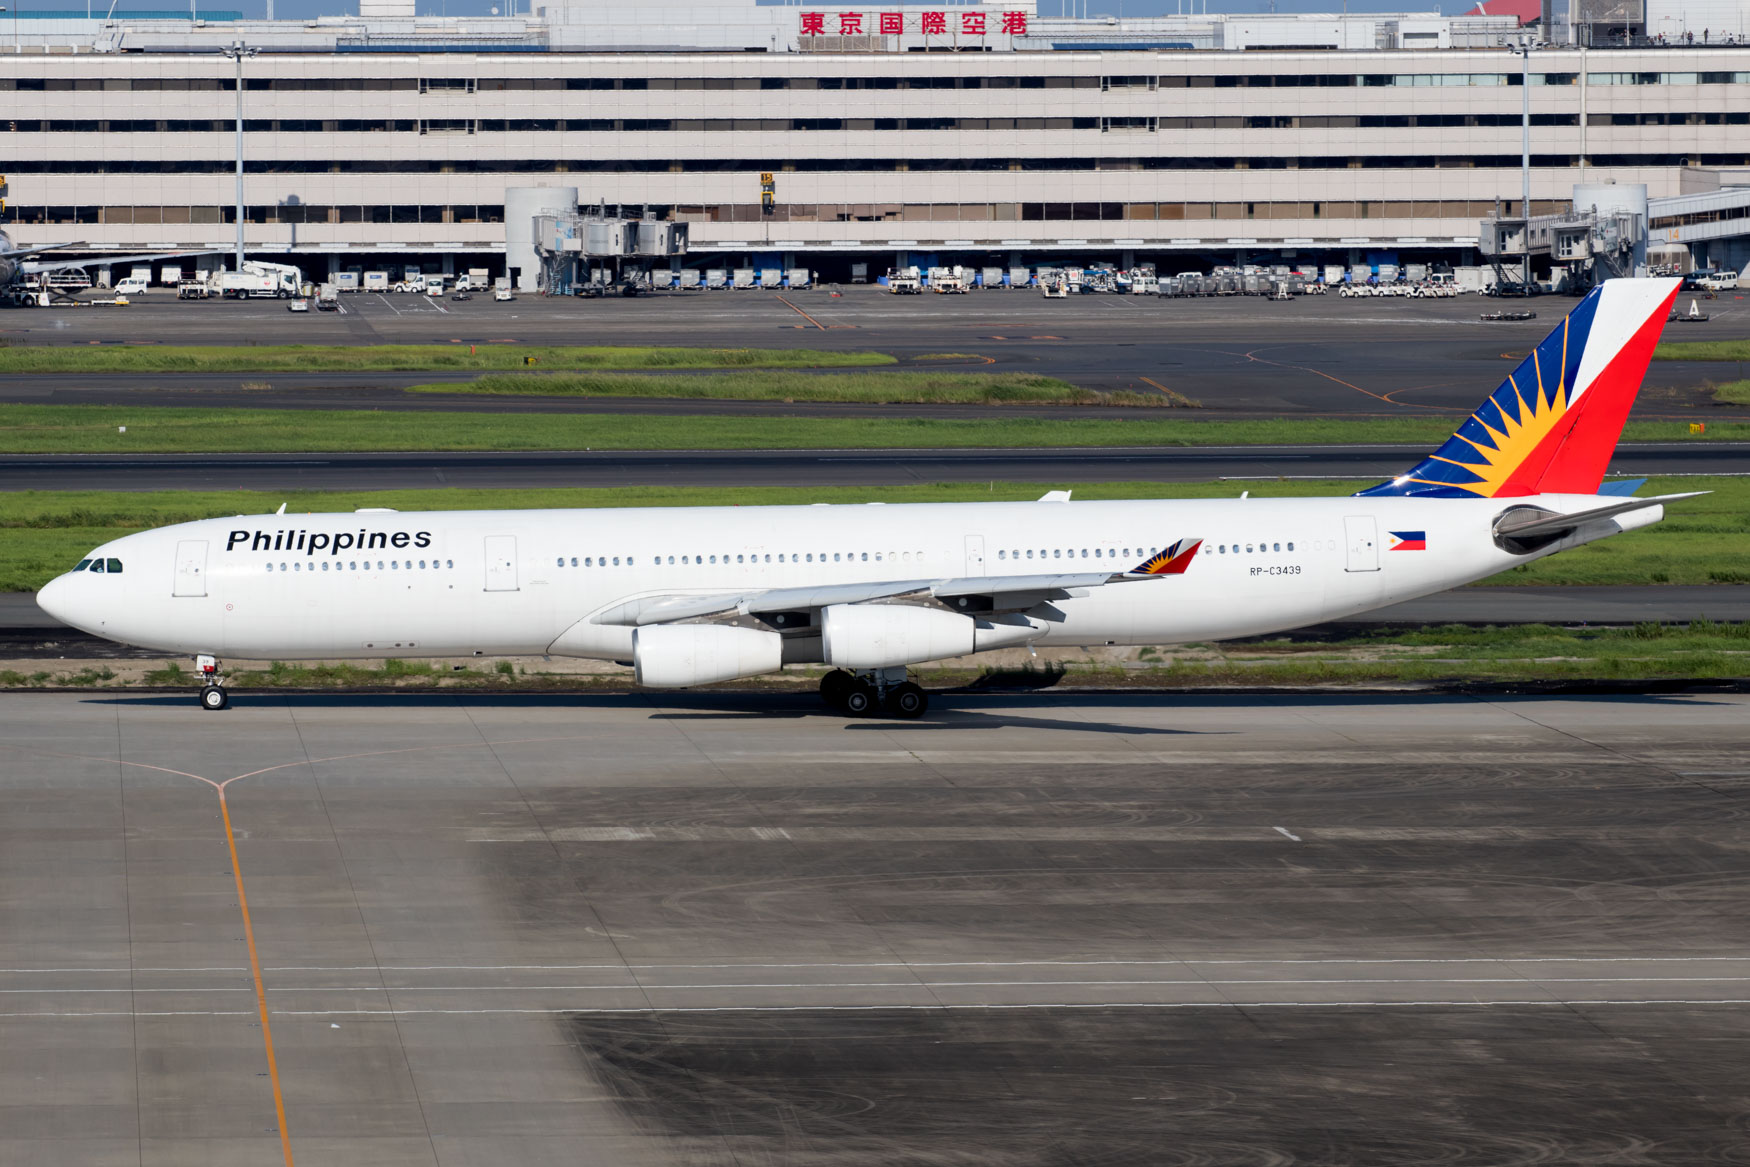 Philippine Airlines A340